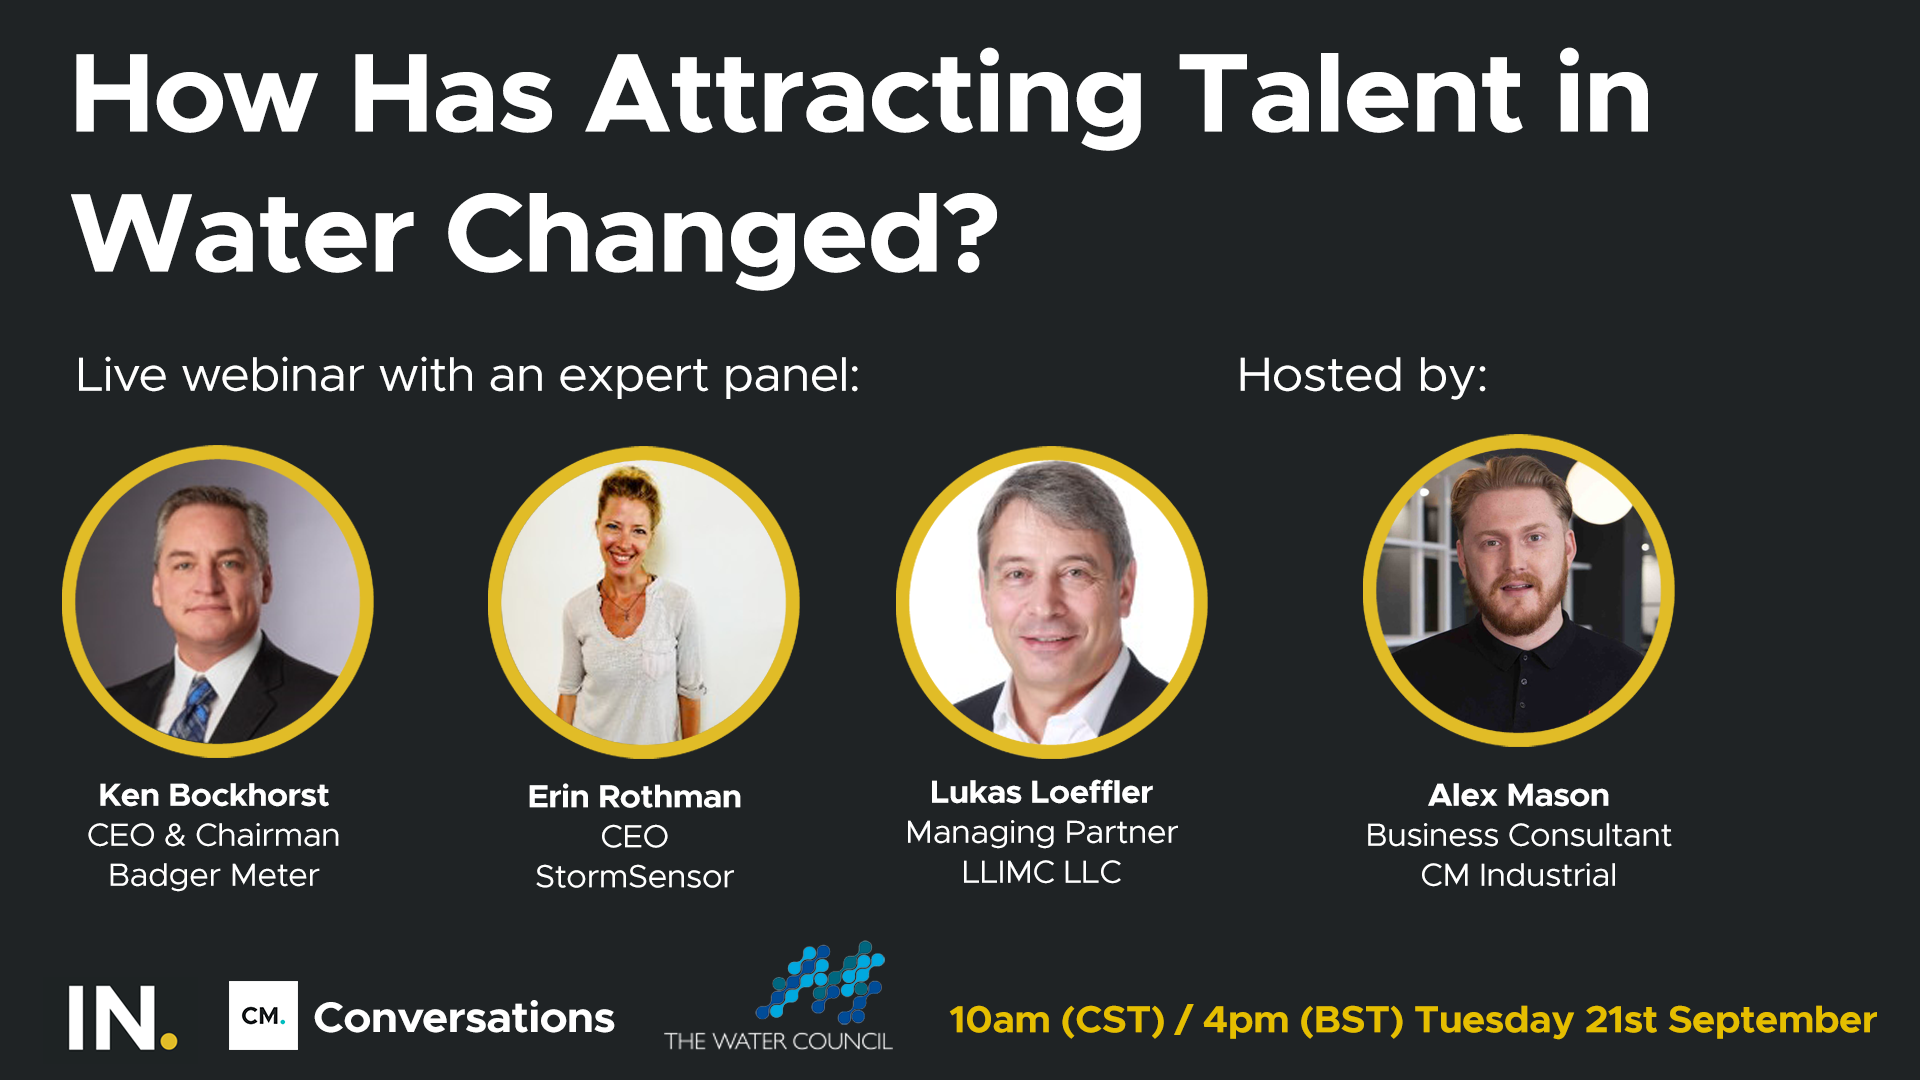 LinkedIn - How Has Attracting Talent in Water Changed-2